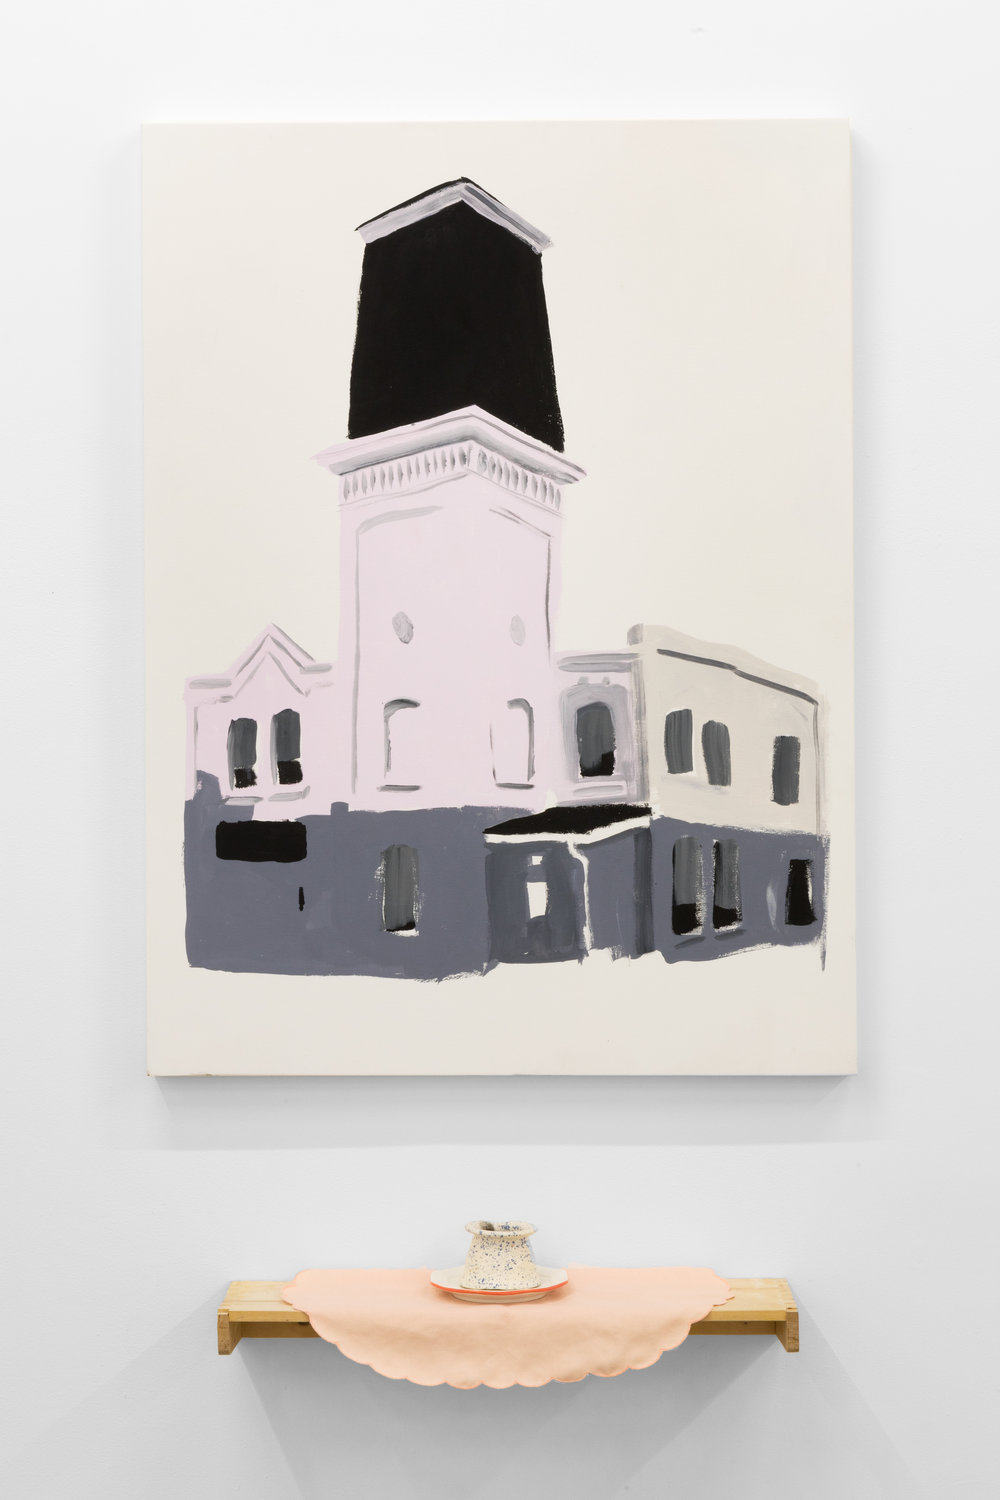 Paintings as Buildings as Altars